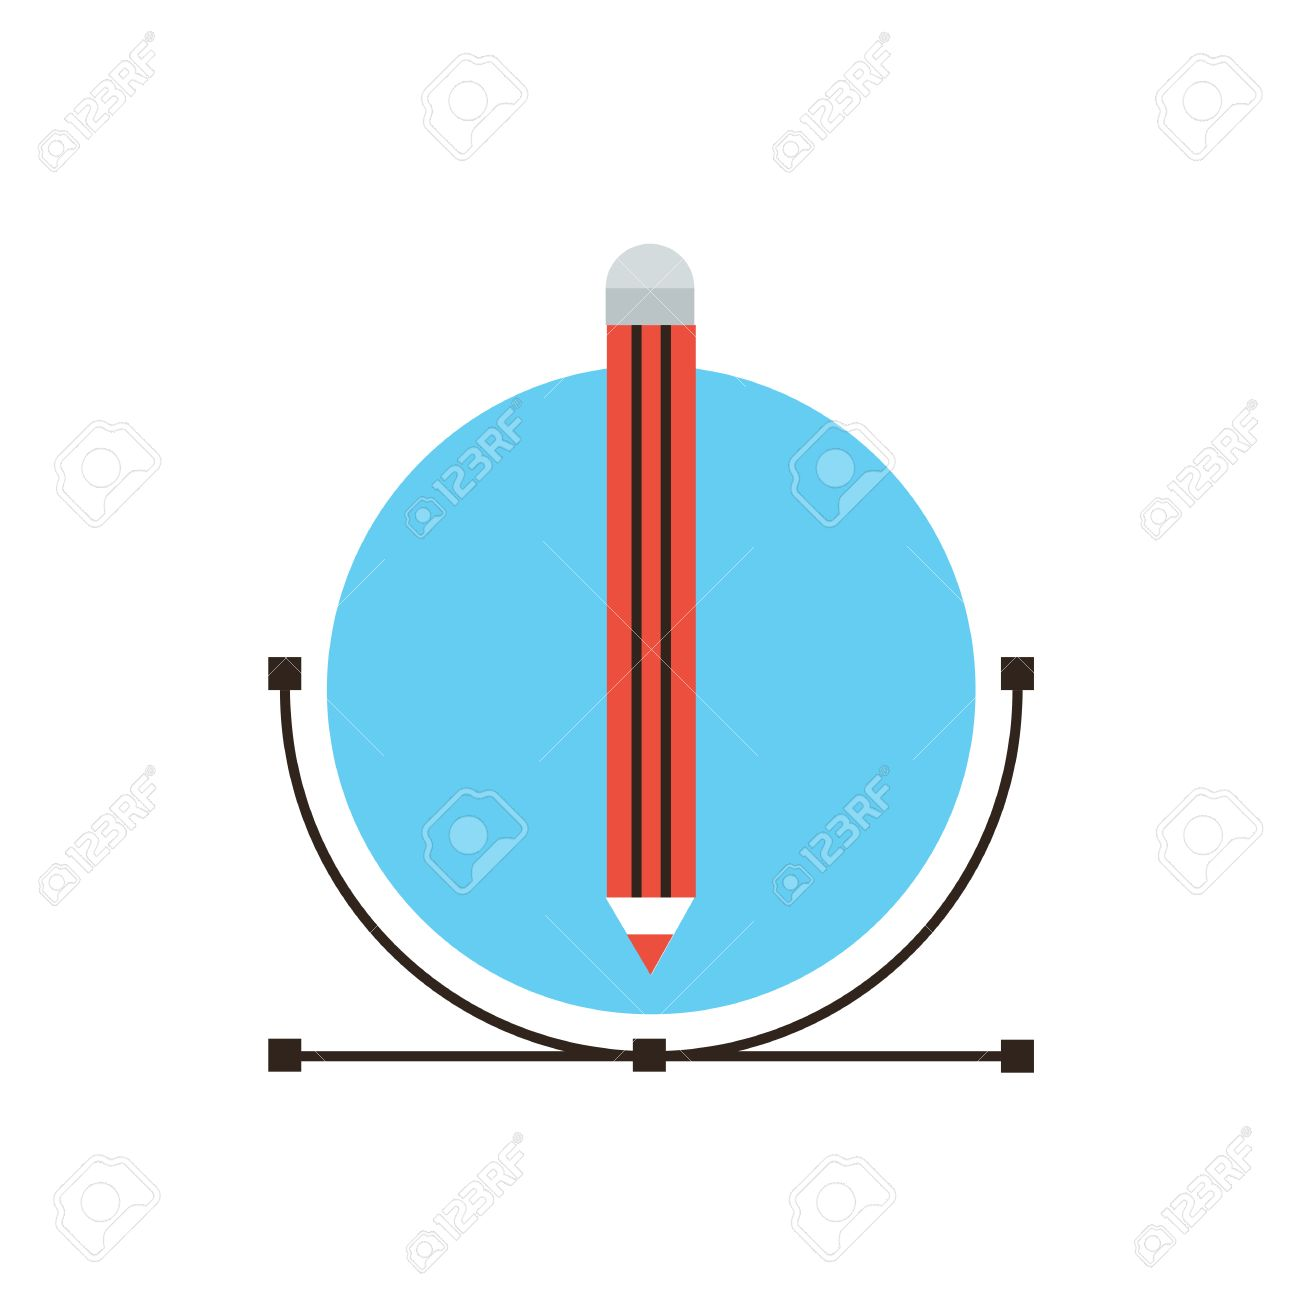 thin line icon with flat design element of graphic design drawing